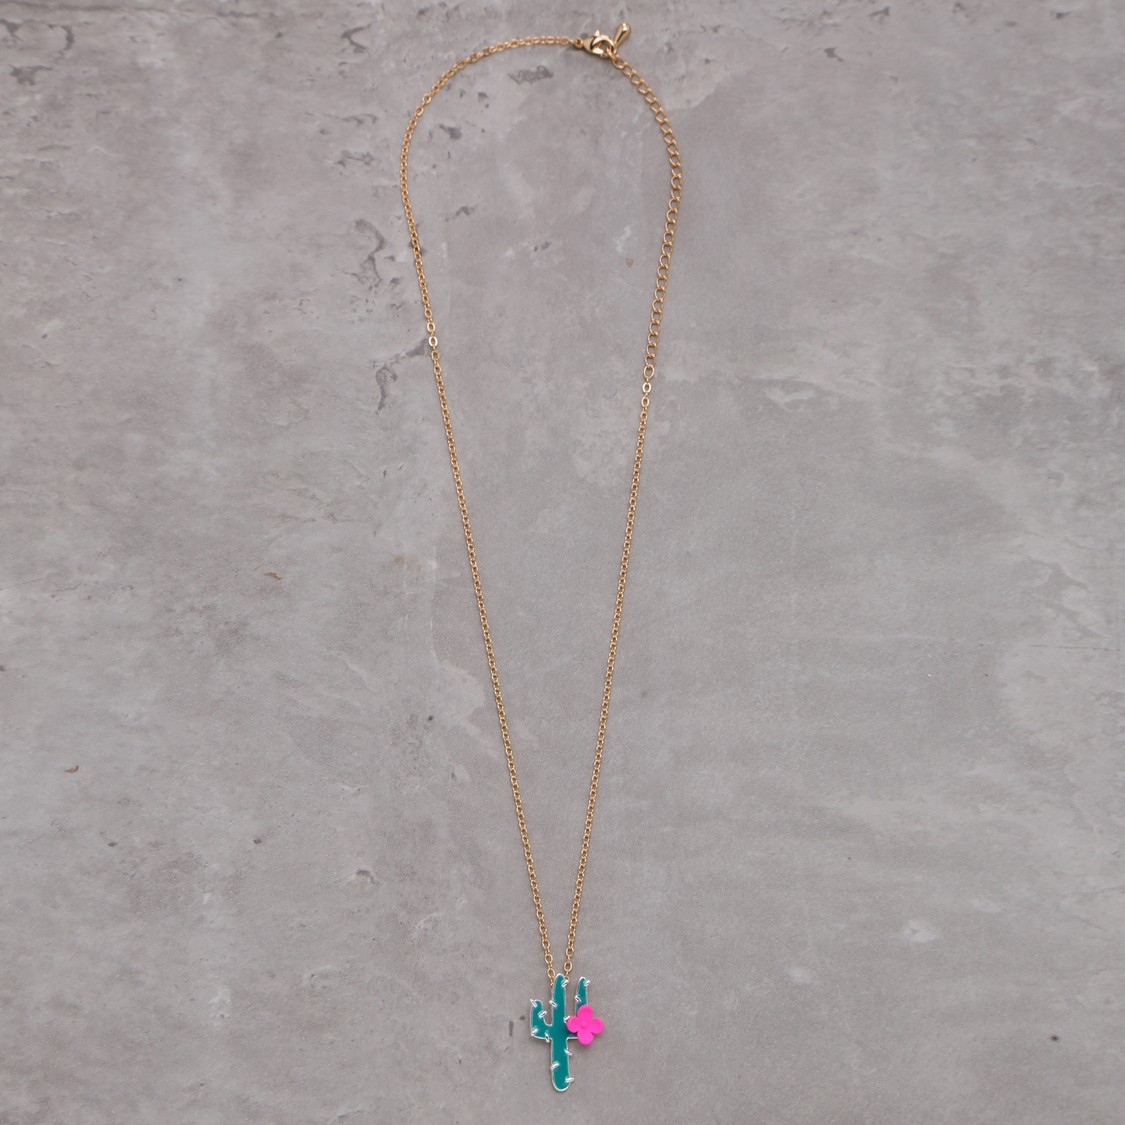 Necklace with Lobster Clasp